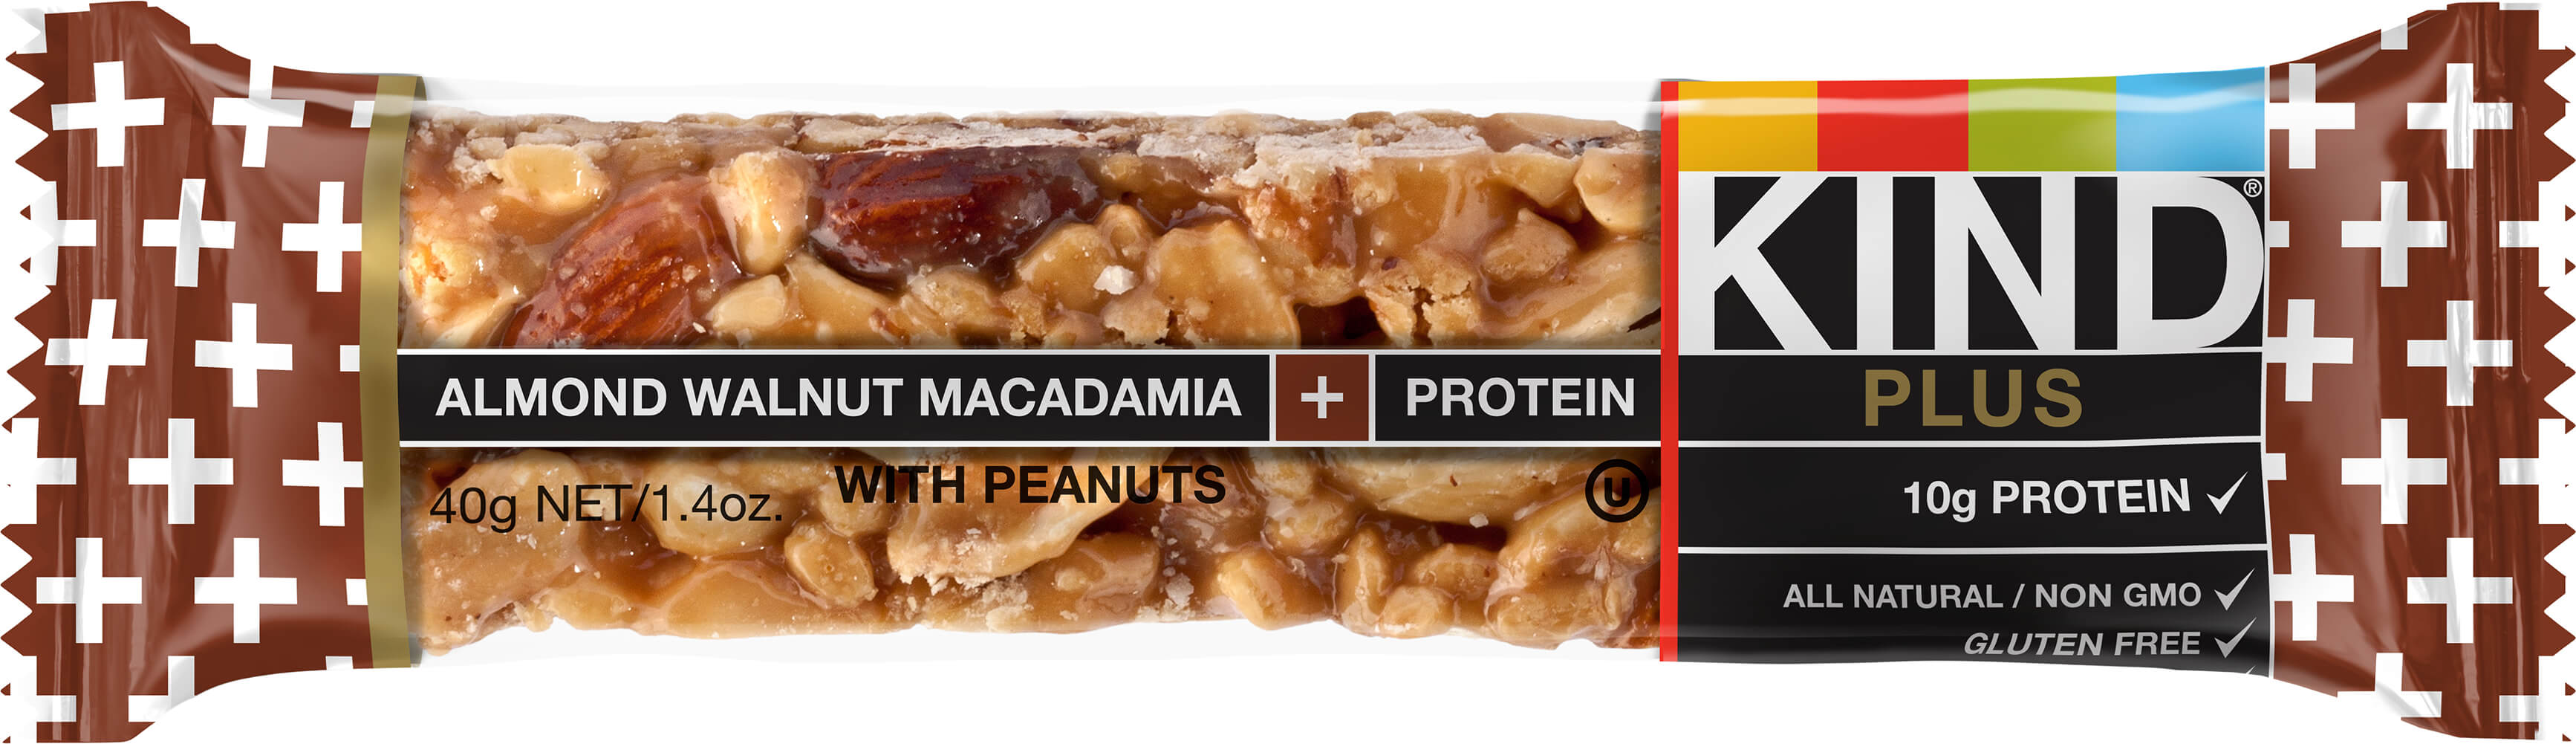 KIND Plus Cranberry Almond + Antioxidants with Macadamia Nuts Thumbnail Alternate Bottle View